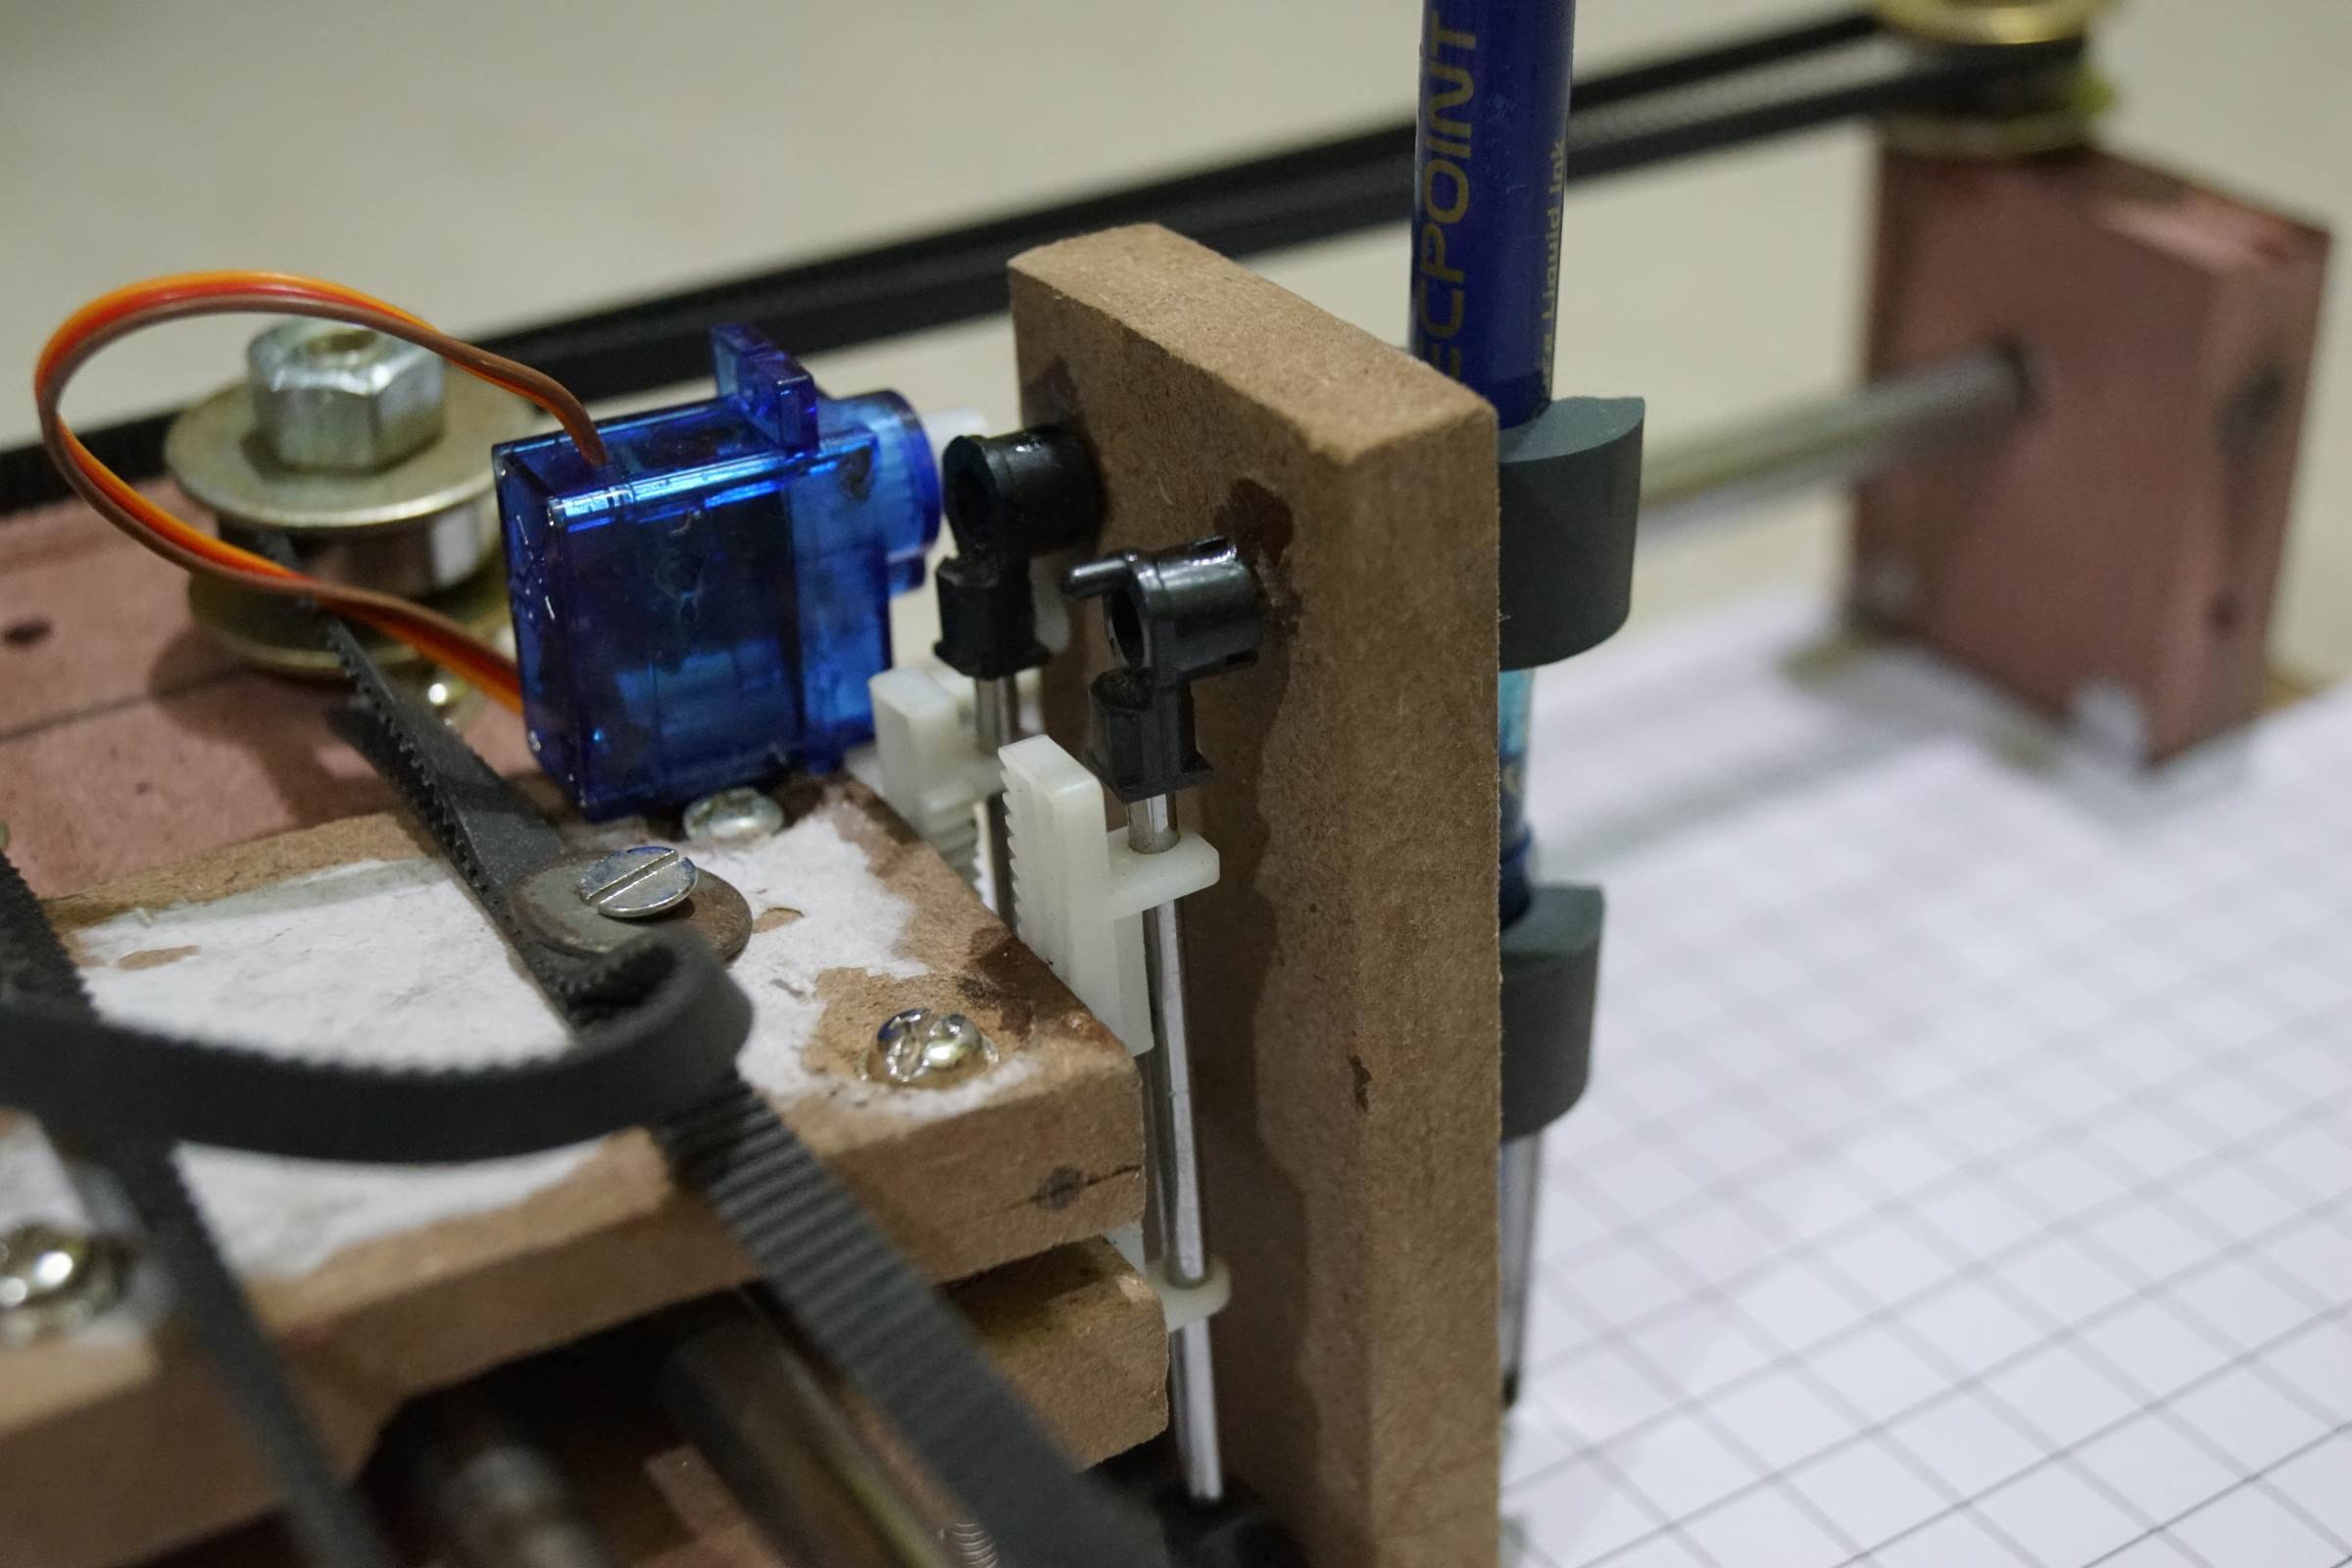 Servo Motor Attachment for Pen Lifting in Arduino Drawing Machine